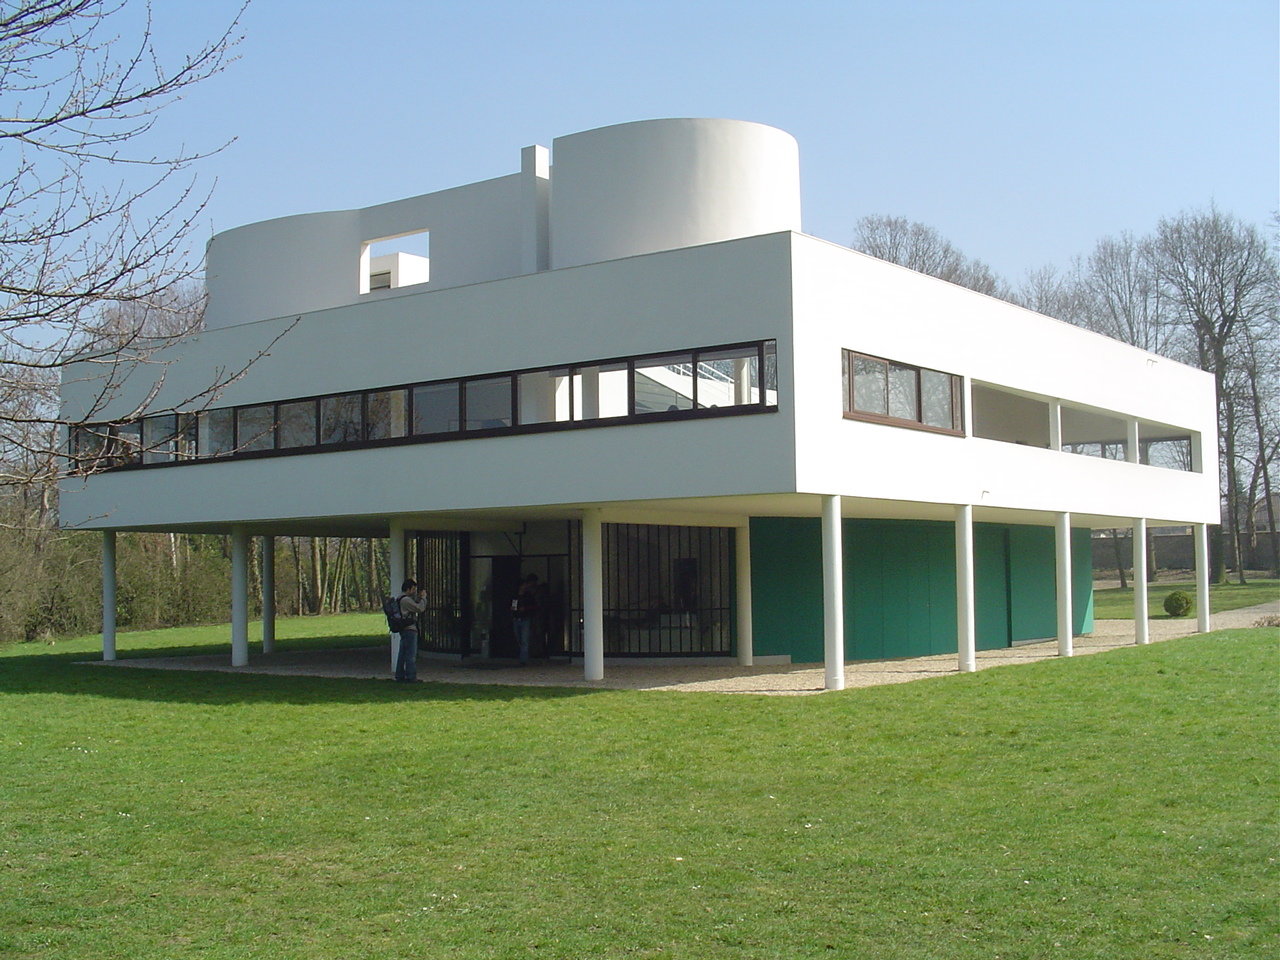 Legennings Architecture The Villa Savoye Le Corbusier